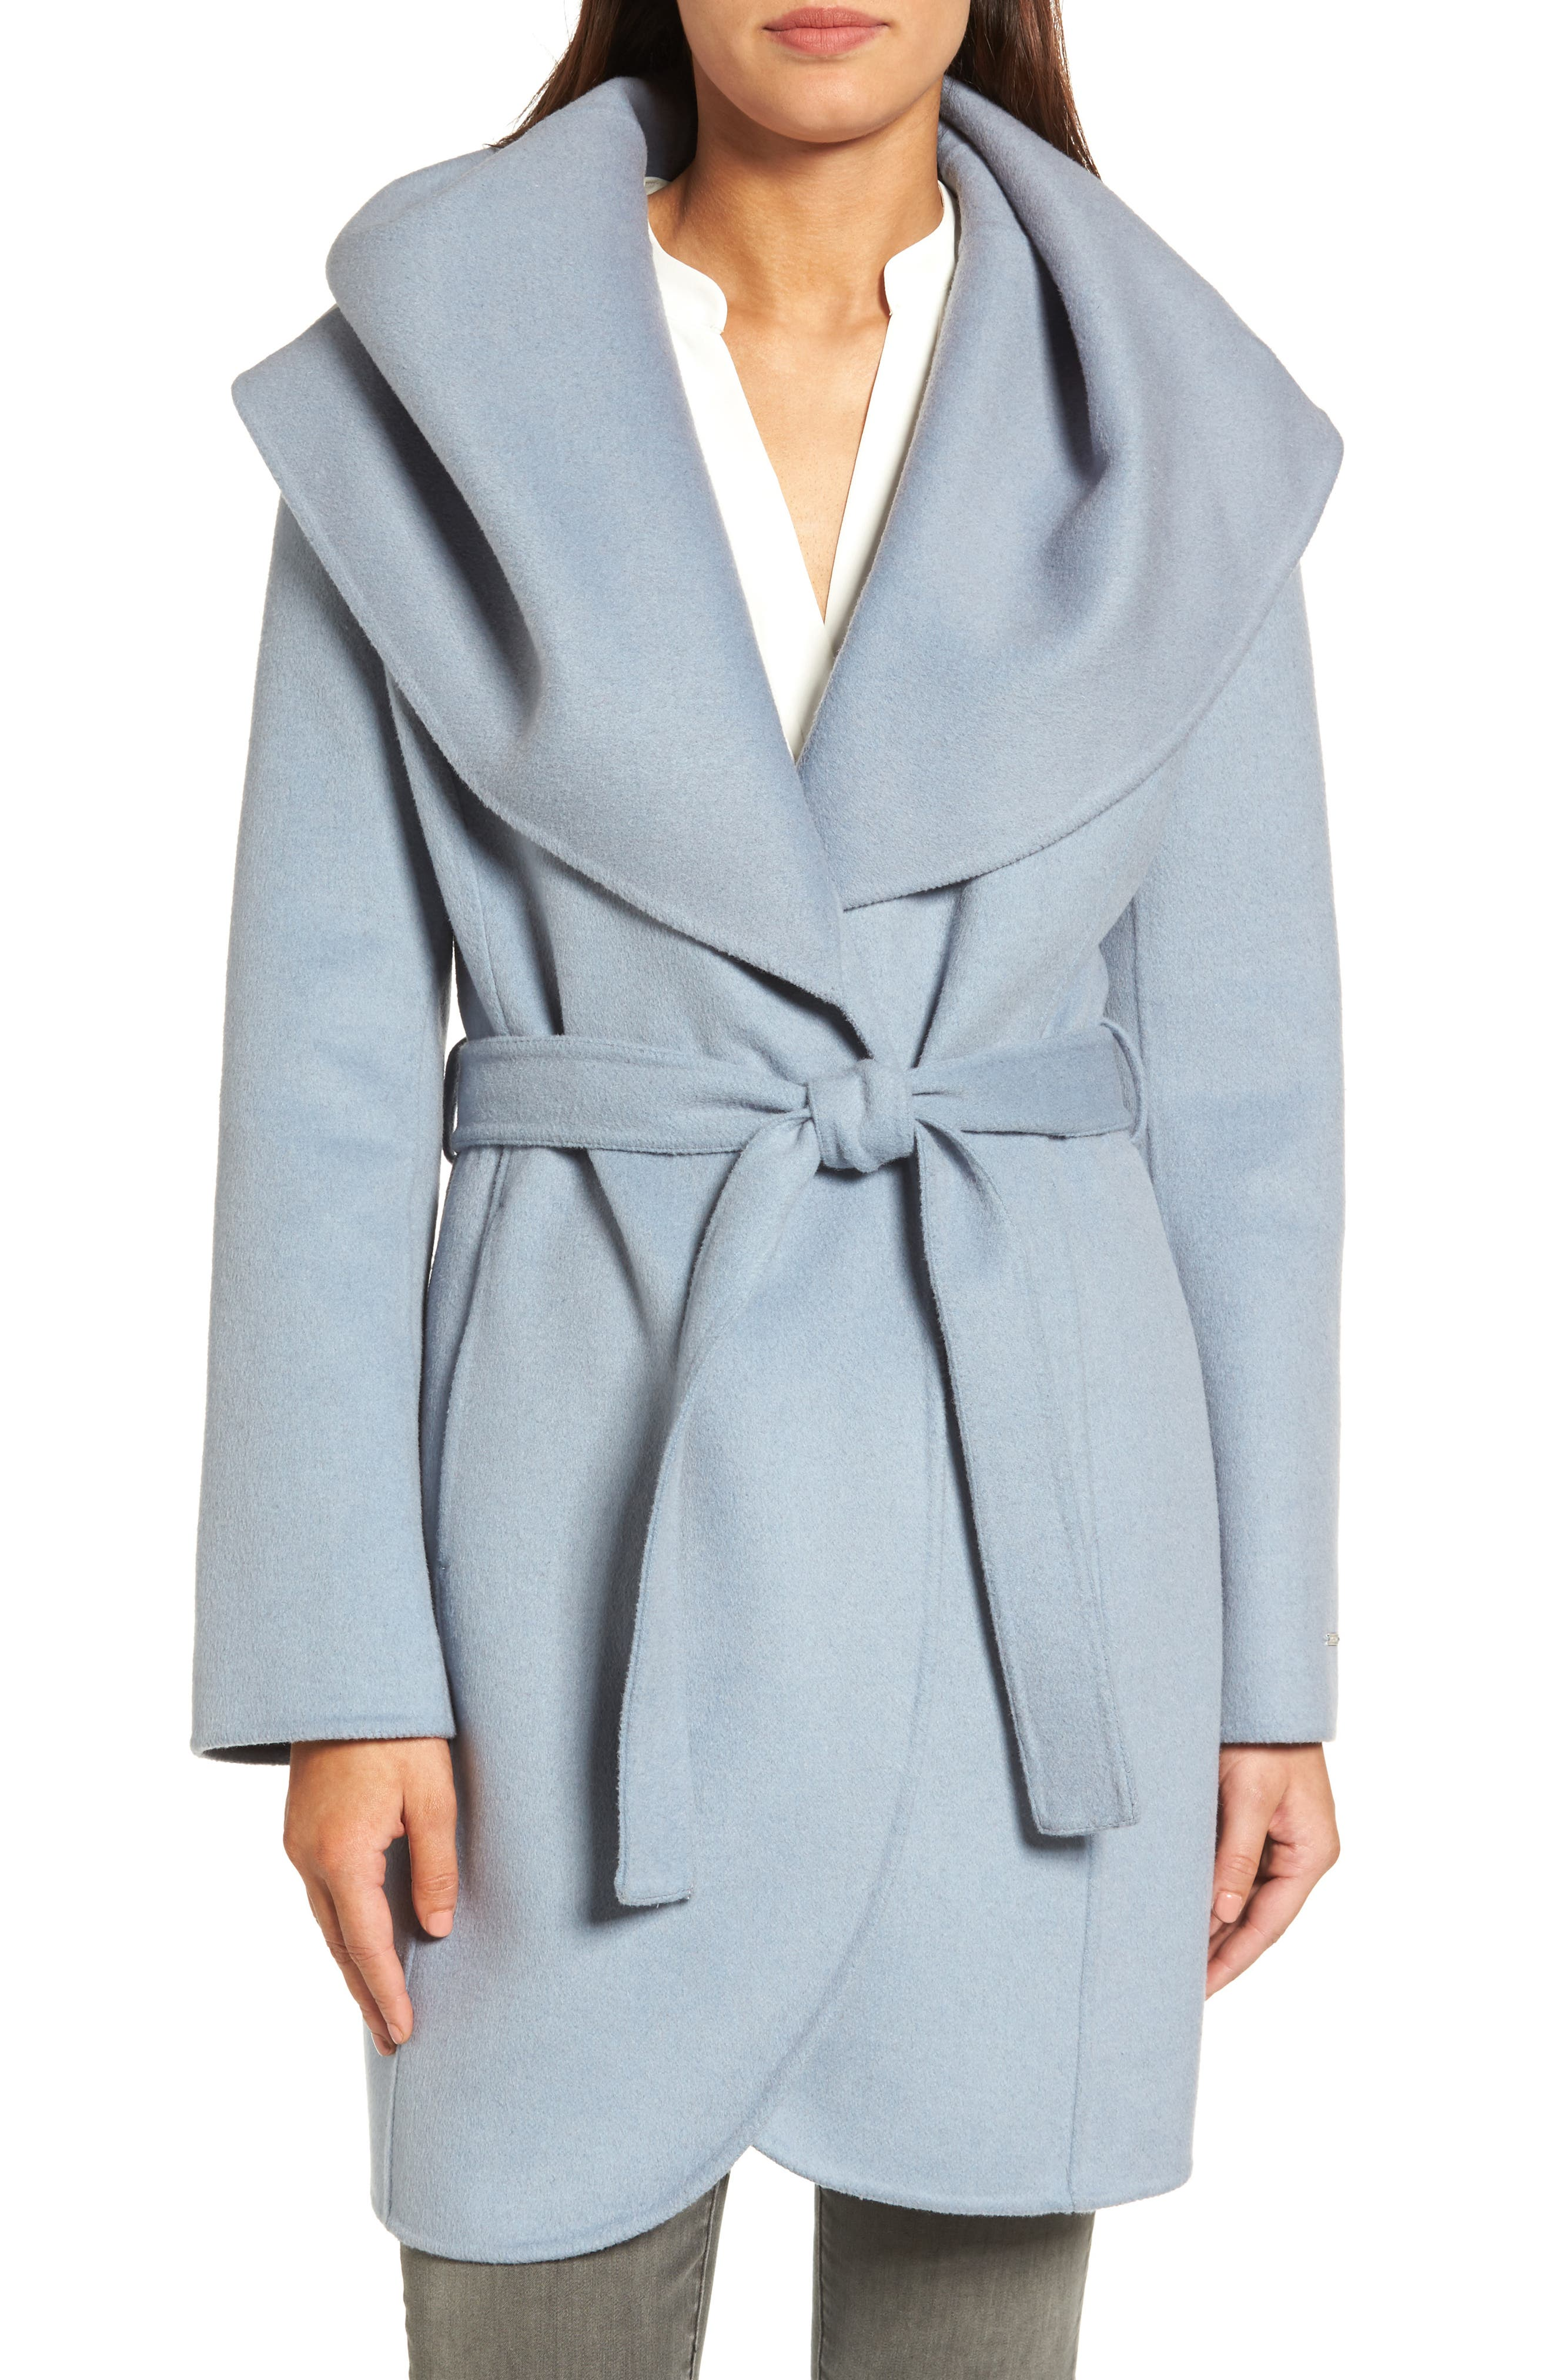 Alternate Image 1 Selected - Tahari Marla Double Face Wool Blend Wrap Coat